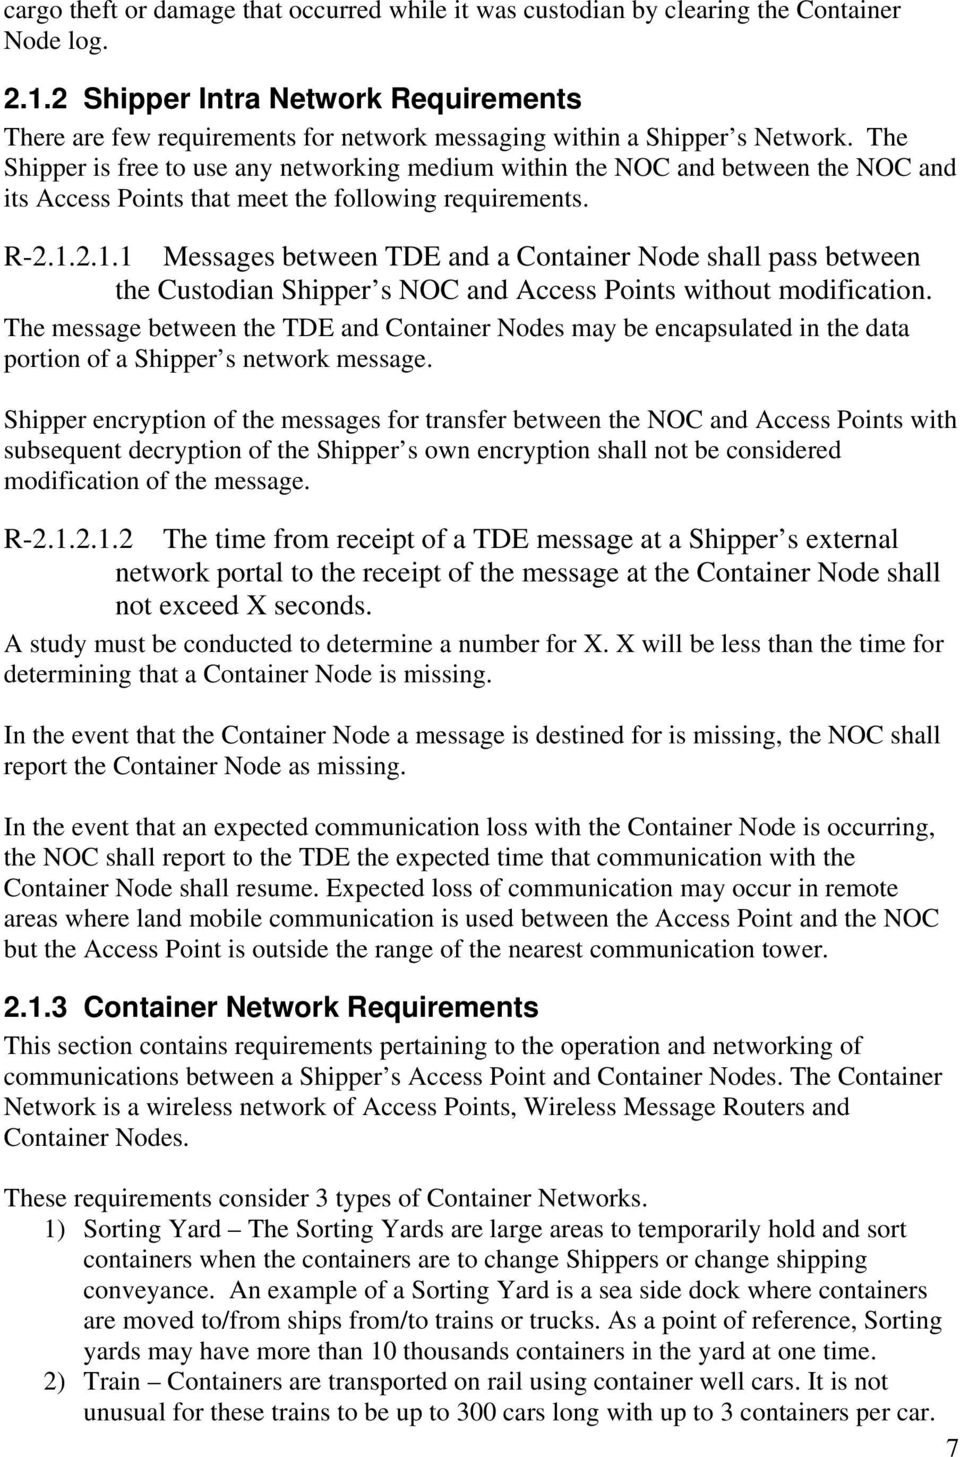 The Shipper is free to use any networking medium within the NOC and between the NOC and its Access Points that meet the following requirements. R-2.1.